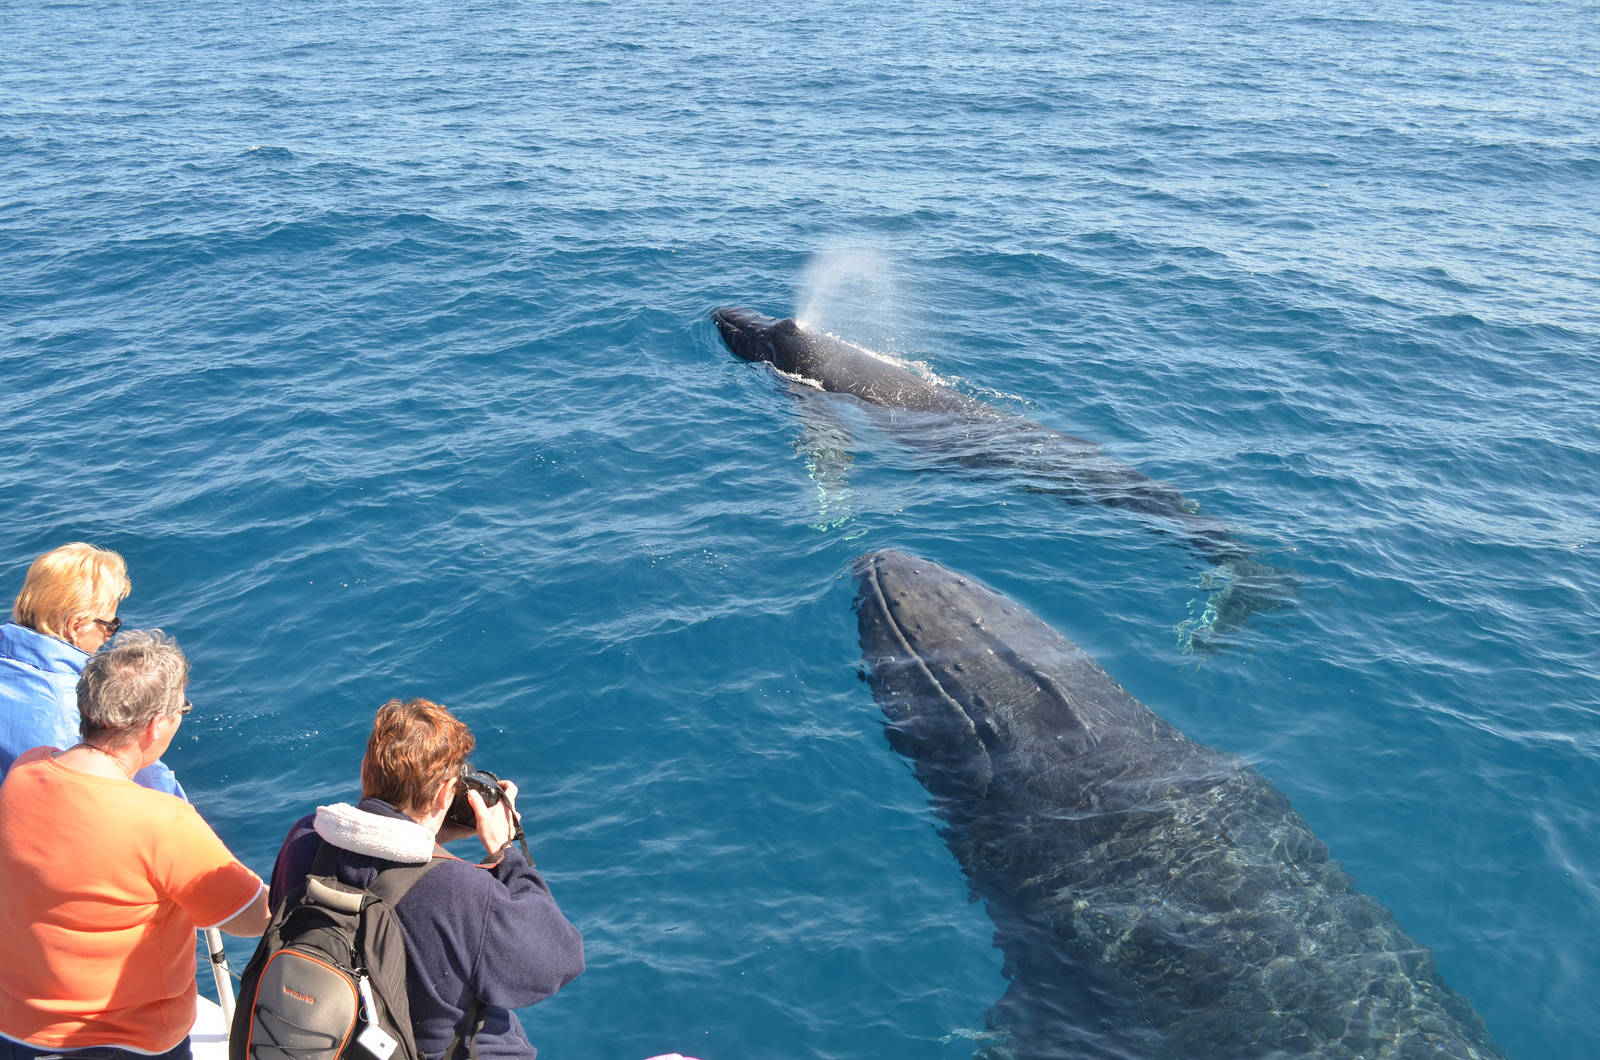 5 of the Most Stunning Wild Dolphin and Whale Encounters Captured on Film